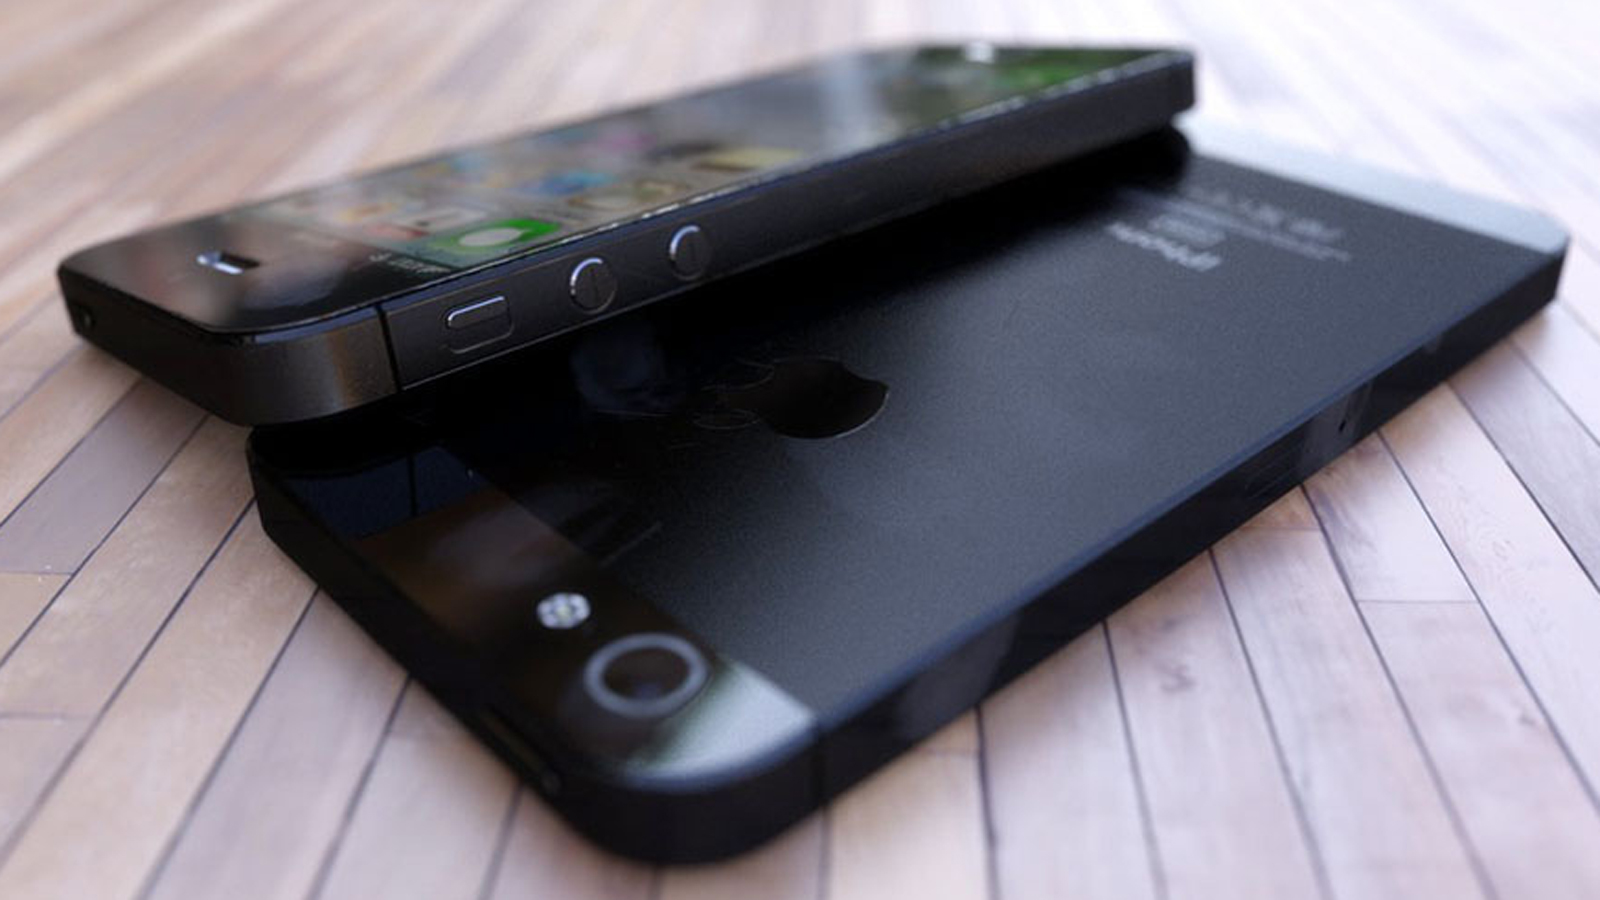 Click here to read The New iPhone 2012 Could Look Quite Beautiful